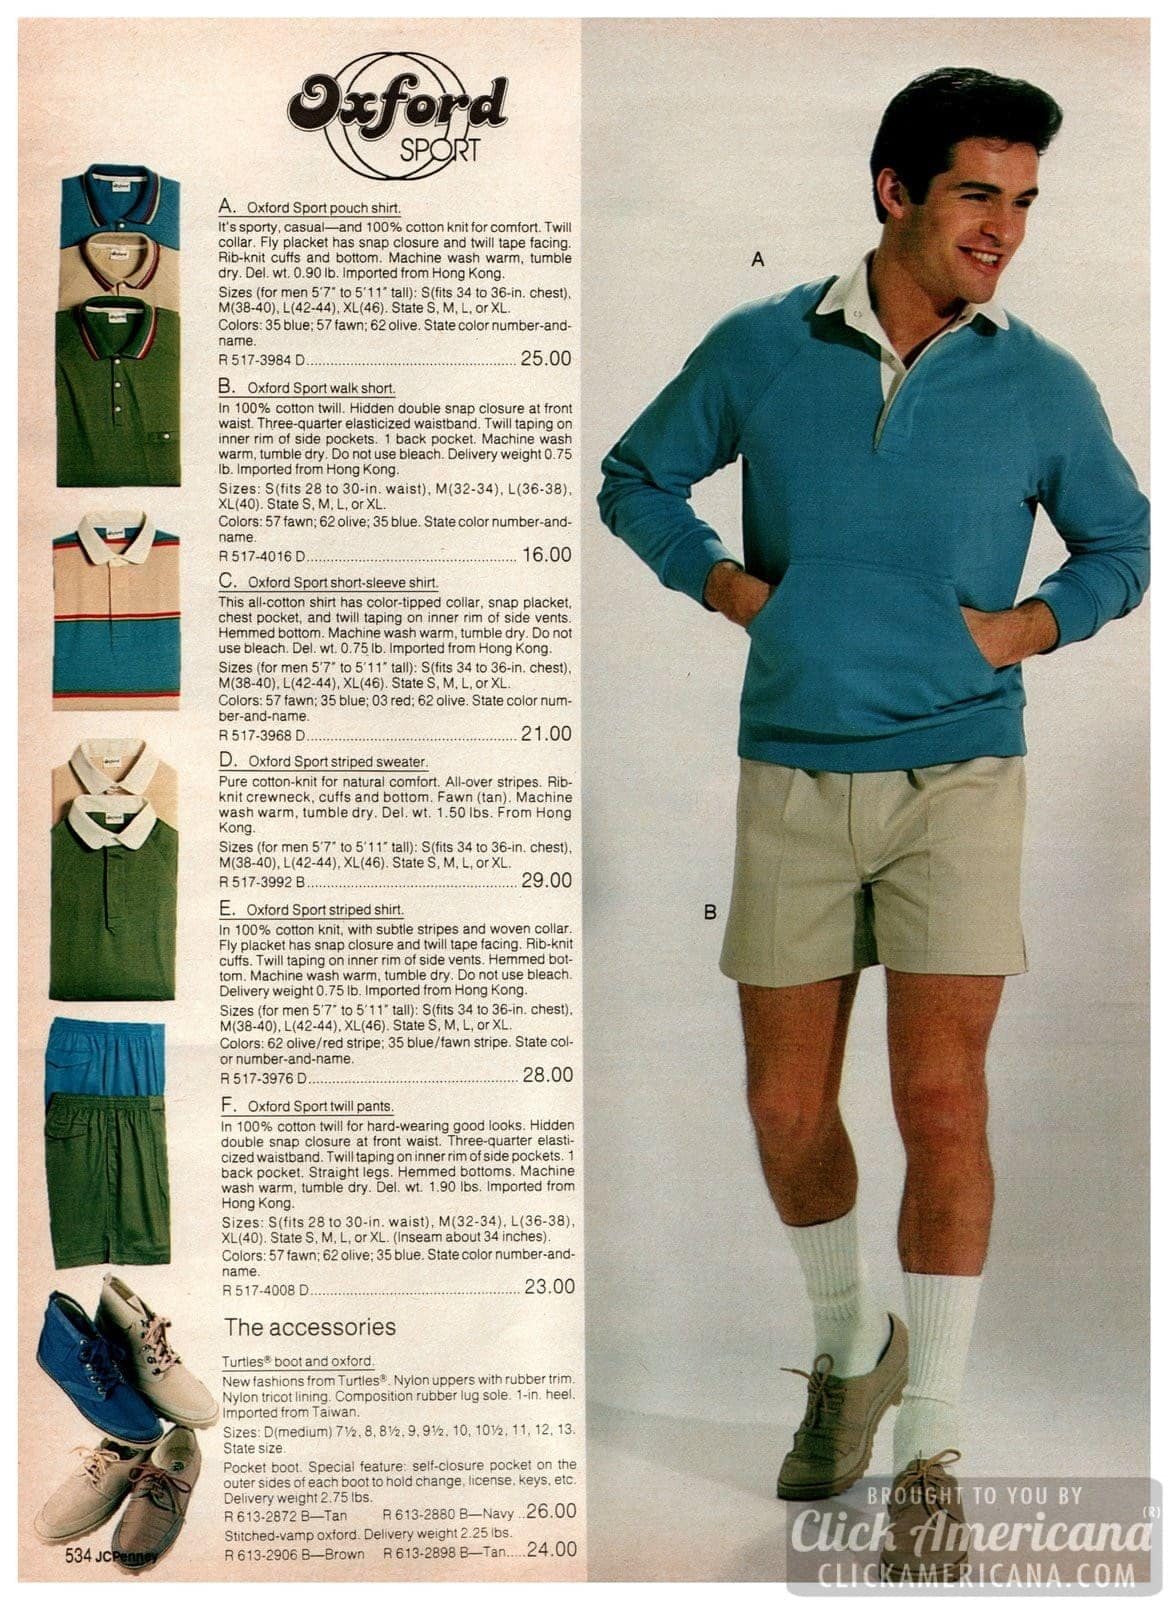 Oxford Sport workout and casualwear - pouch shirt, walking shorts and Turtles Oxford shoes in tan and brown